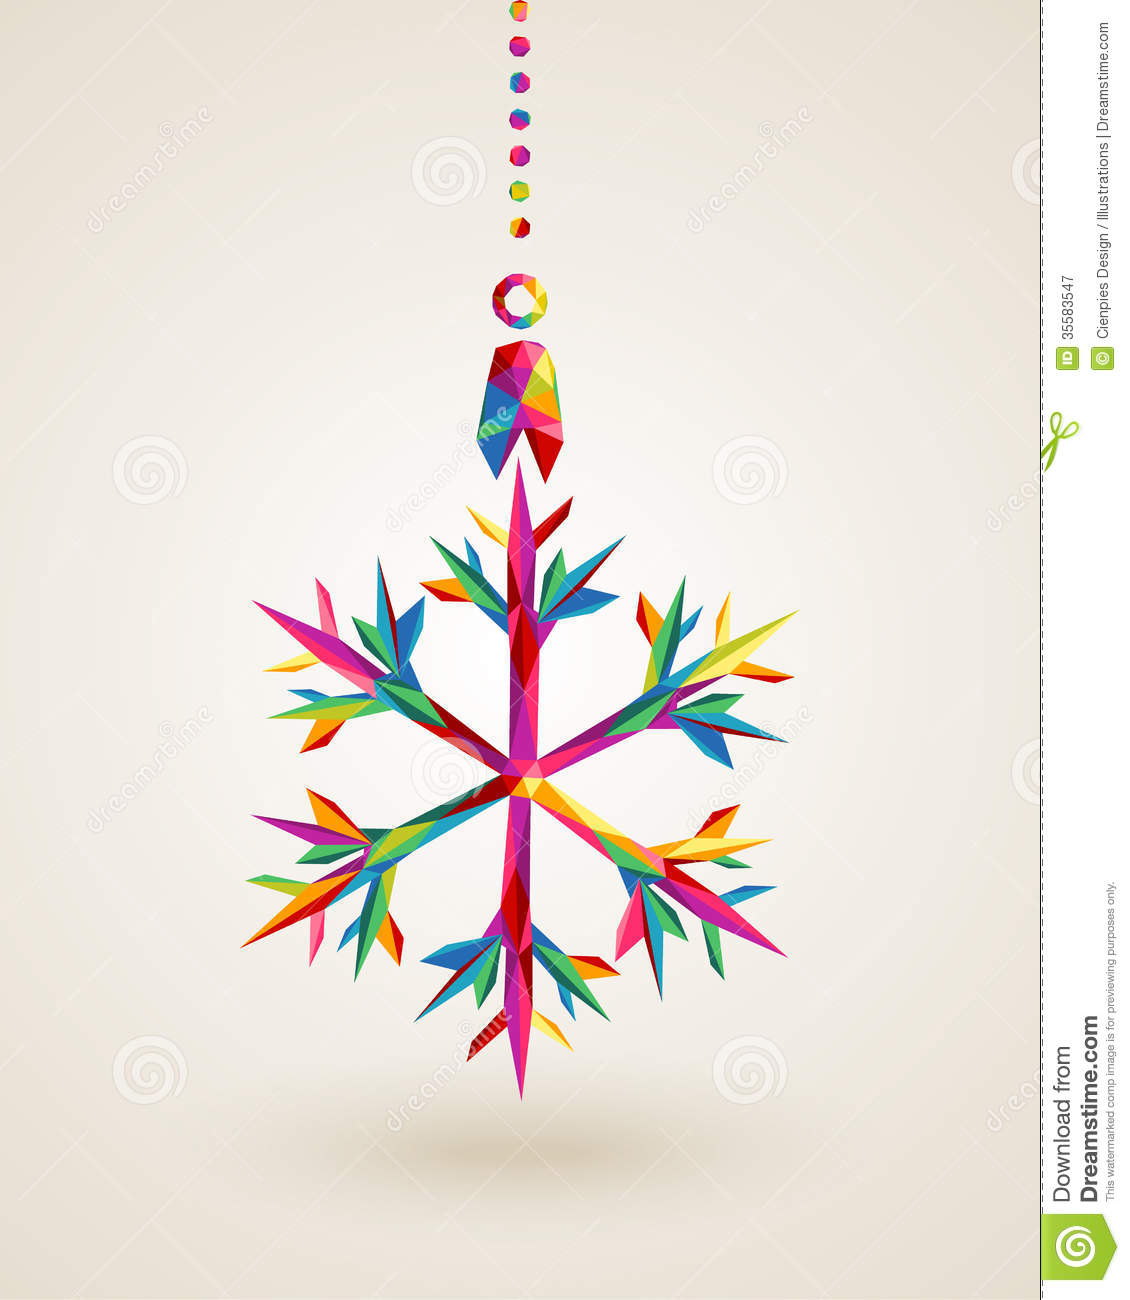 Merry Christmas Snowflake Multicolors Hanging Bauble